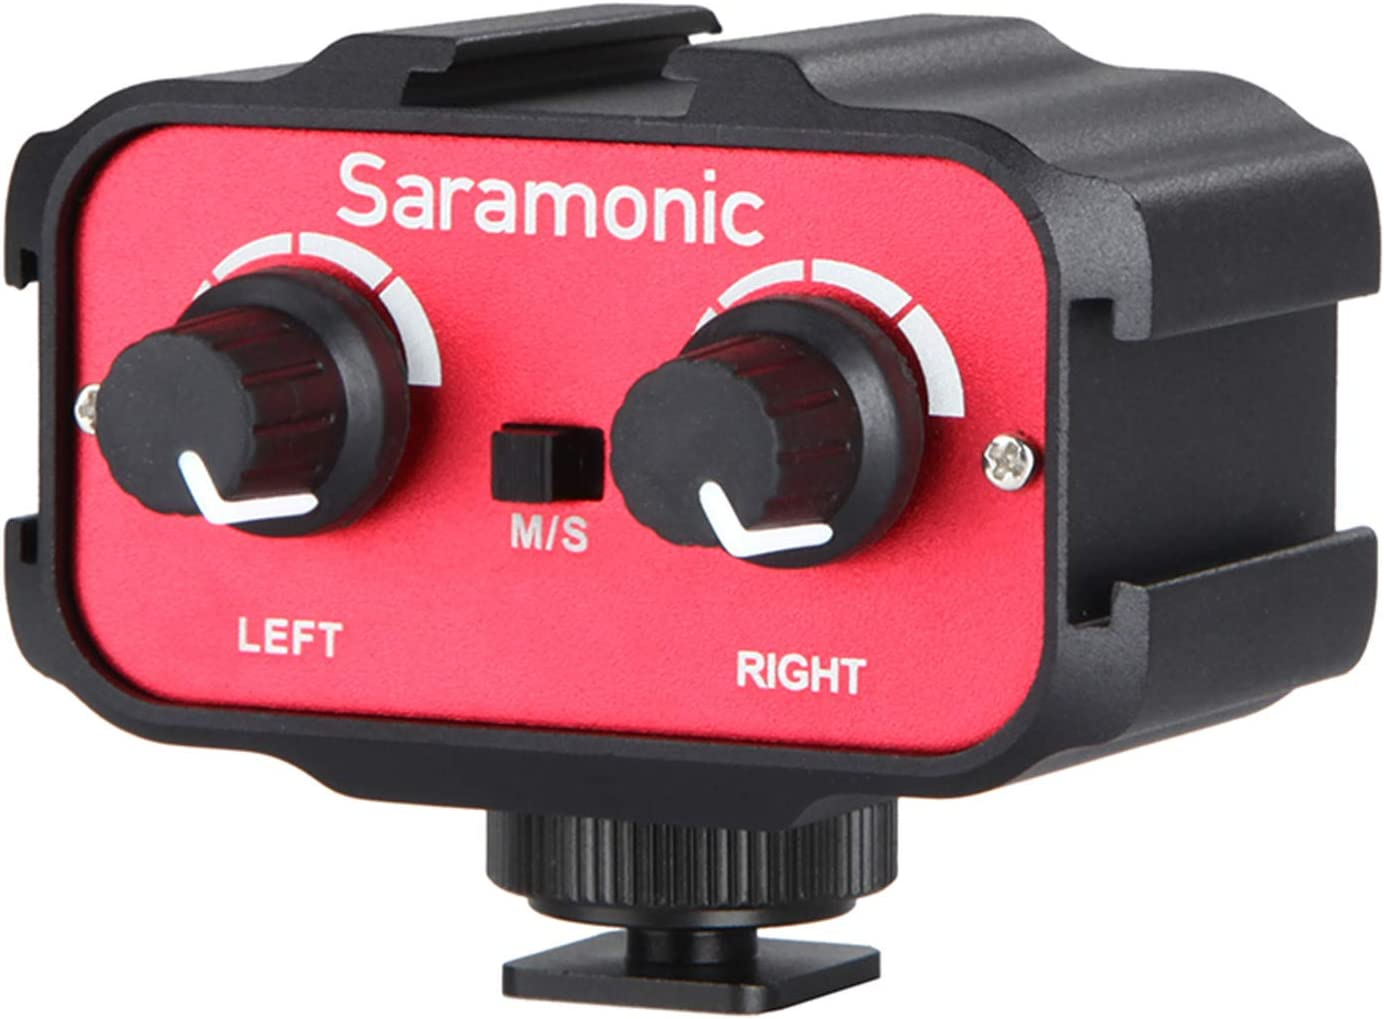 Microphone Audio Mixer, Saramonic SR-AX100 Universal Dual Channels Microphone Amplifier Adapter 3.5mm Jack & Cold Shoe Mount Compatible with DSLR Cameras & Camcorders